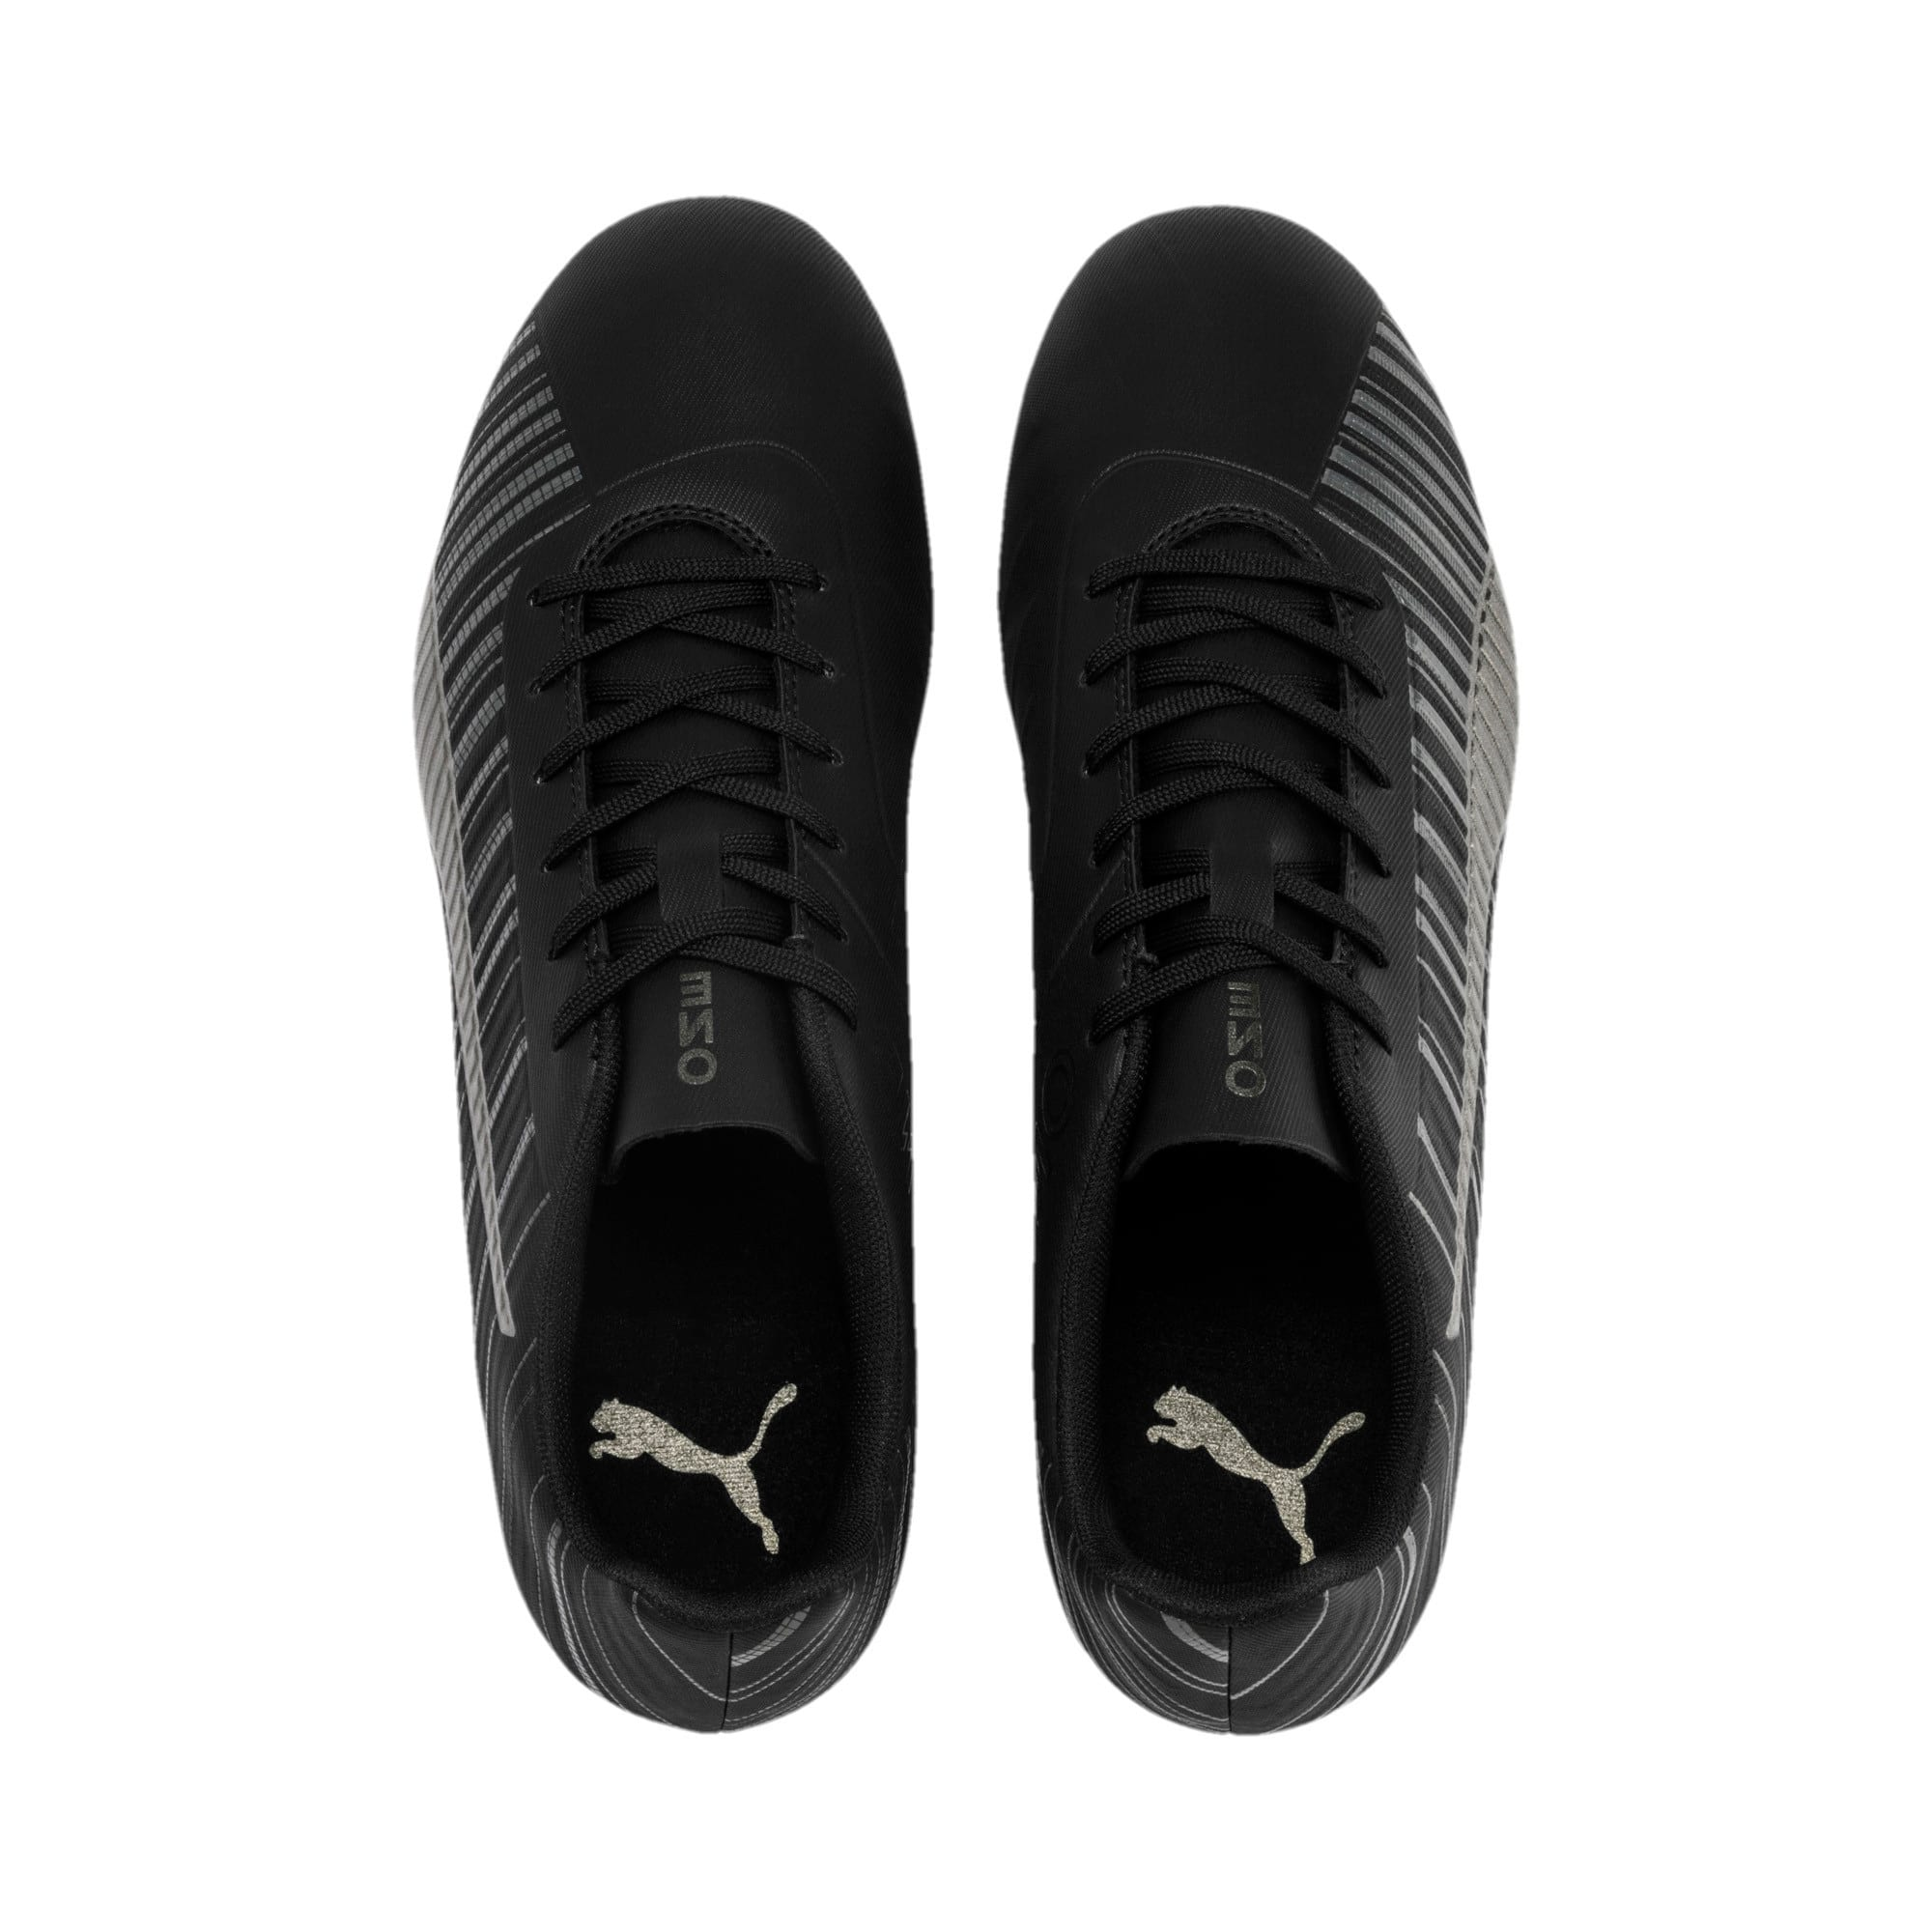 Thumbnail 4 of PUMA ONE 5.4 Men's FG/AG Football Boots, Black-Black-Puma Aged Silver, medium-IND